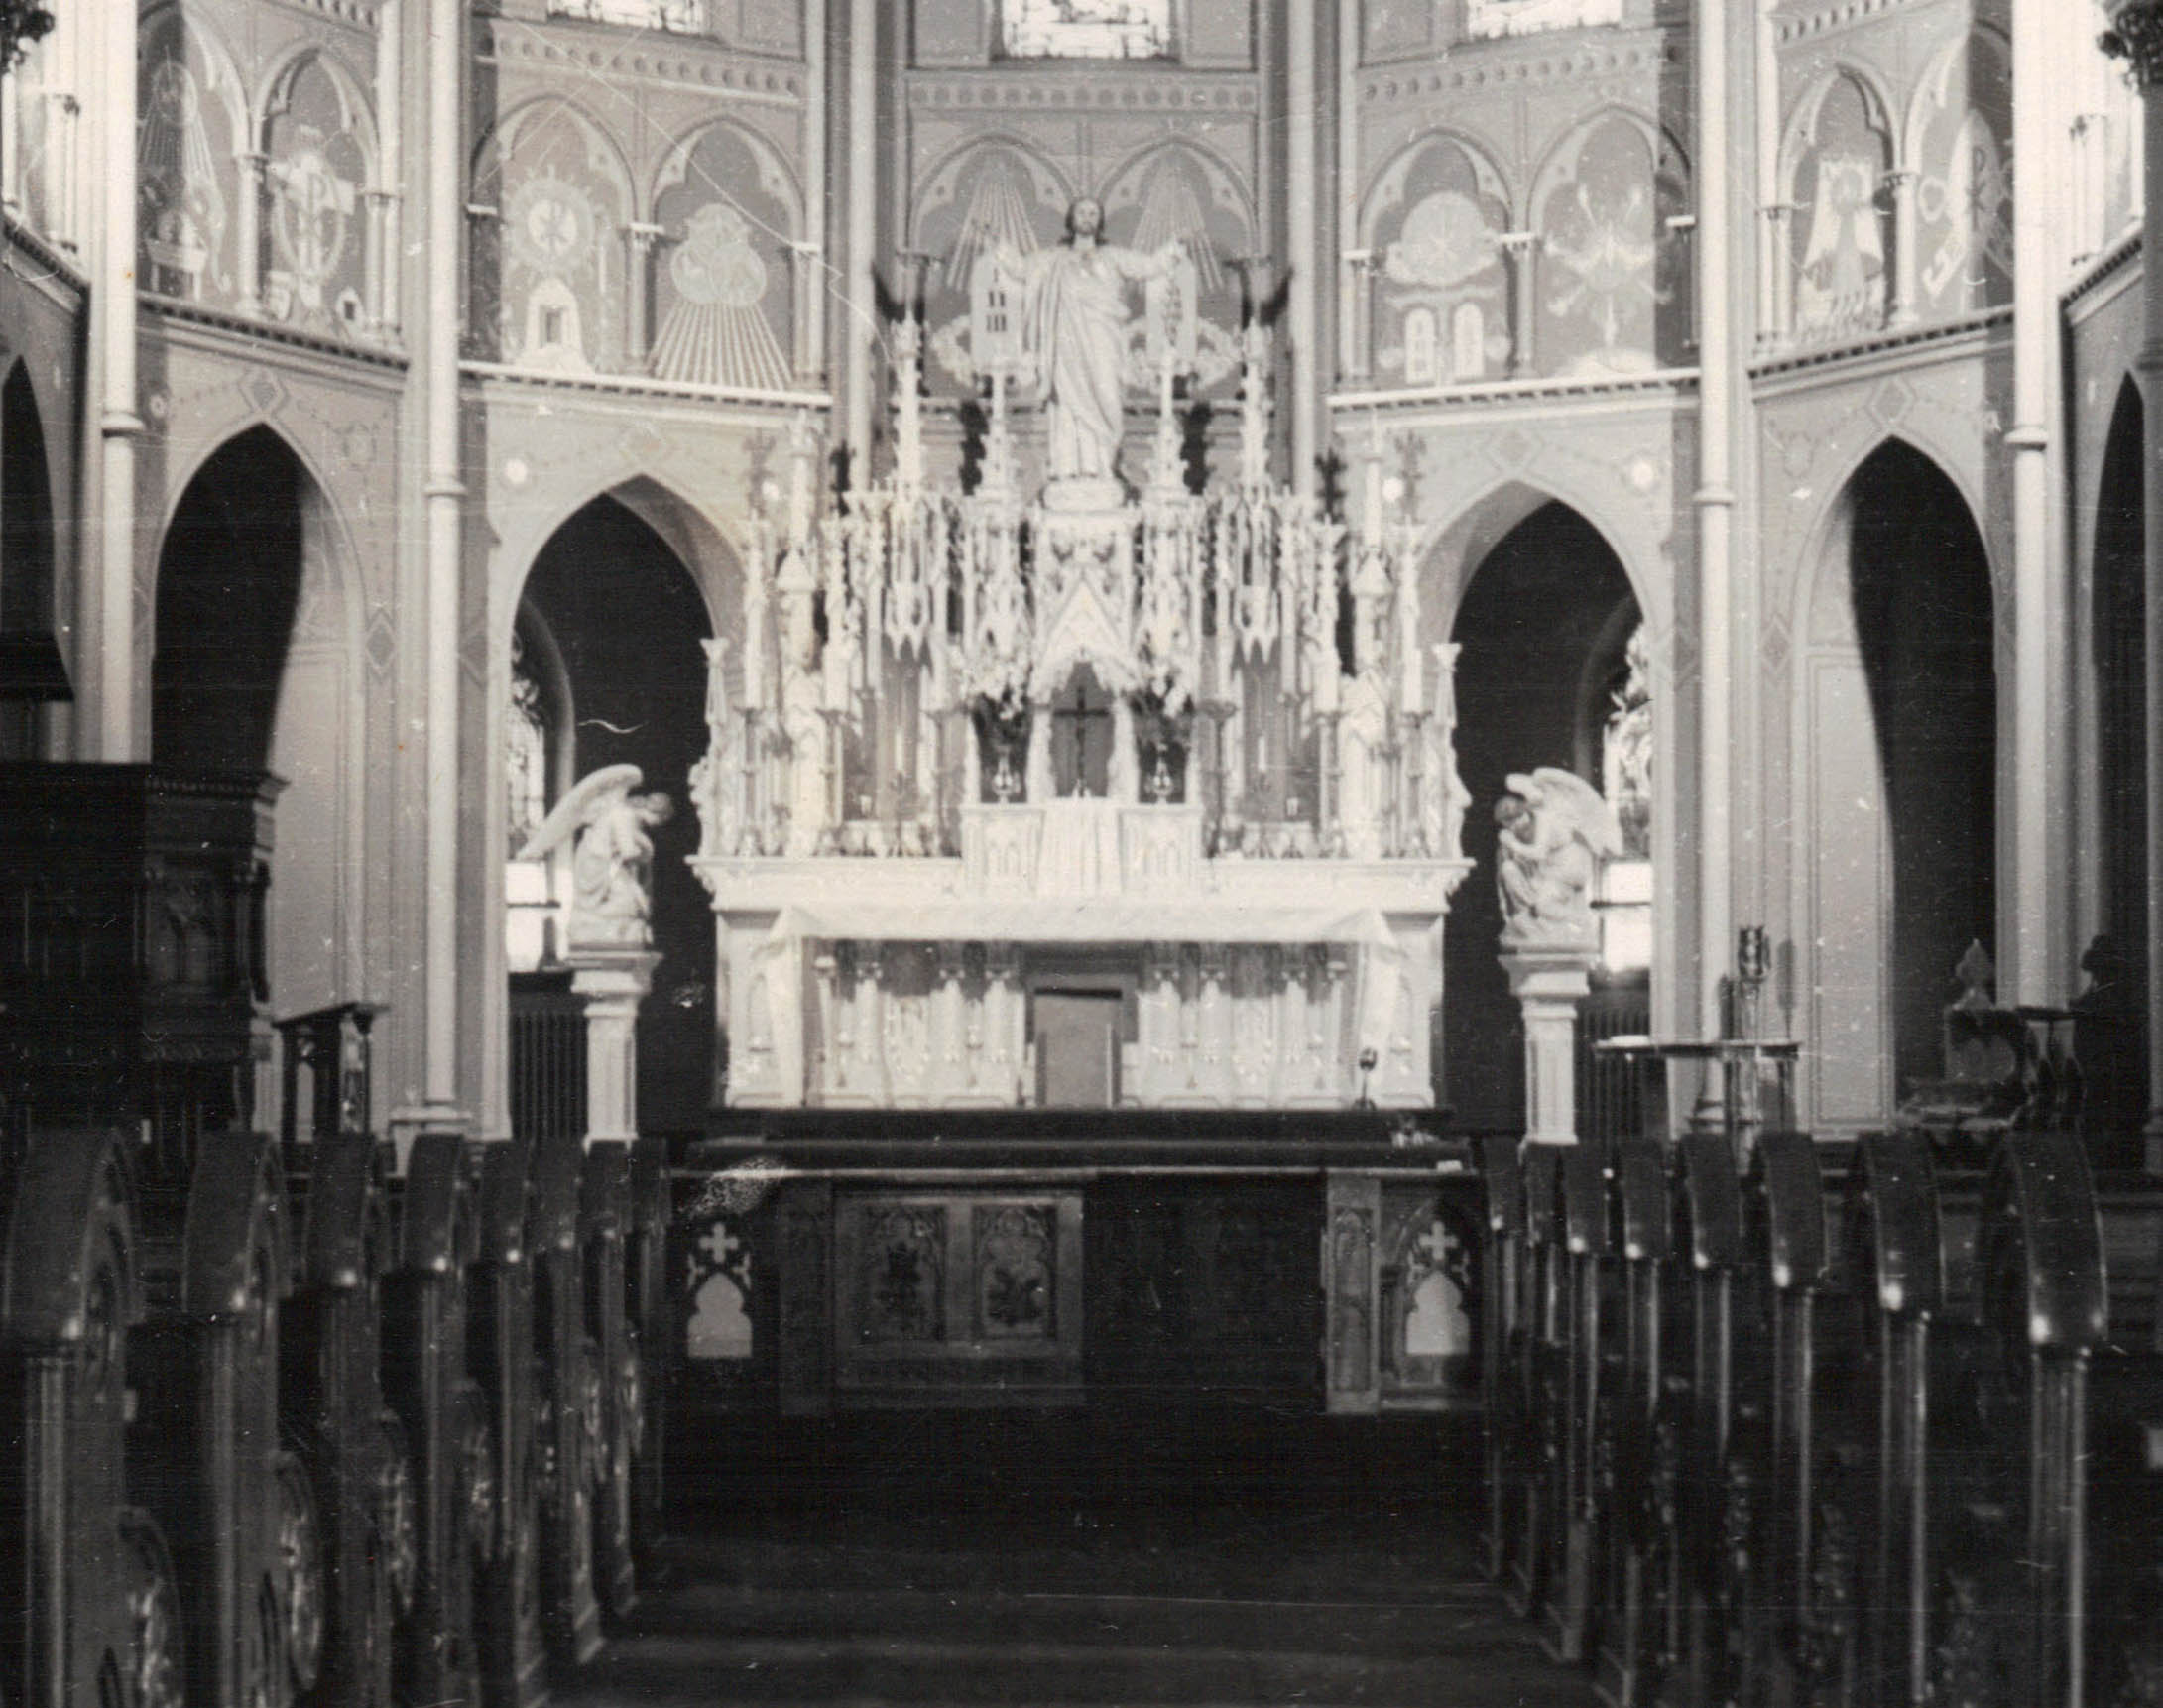 Sanctuary, shortly after painting was completed.